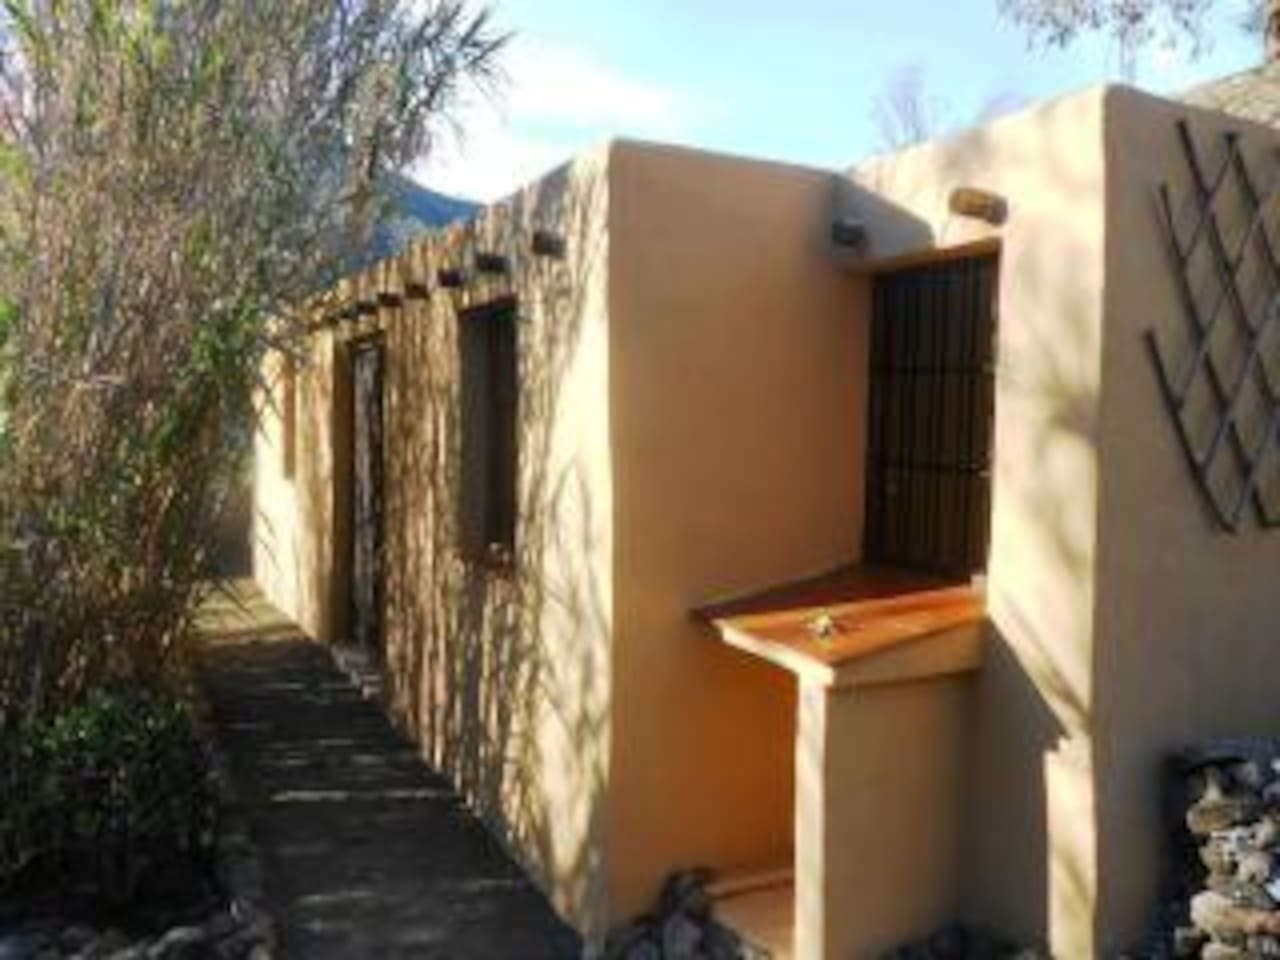 Adobe style funky hideaway nestled in the mountains - has small splash pool in the summer...  for walkers in the winter, for having time on your own, fabulous for romantics,  great base for exploring other parts of Spain or stay put and chill out...